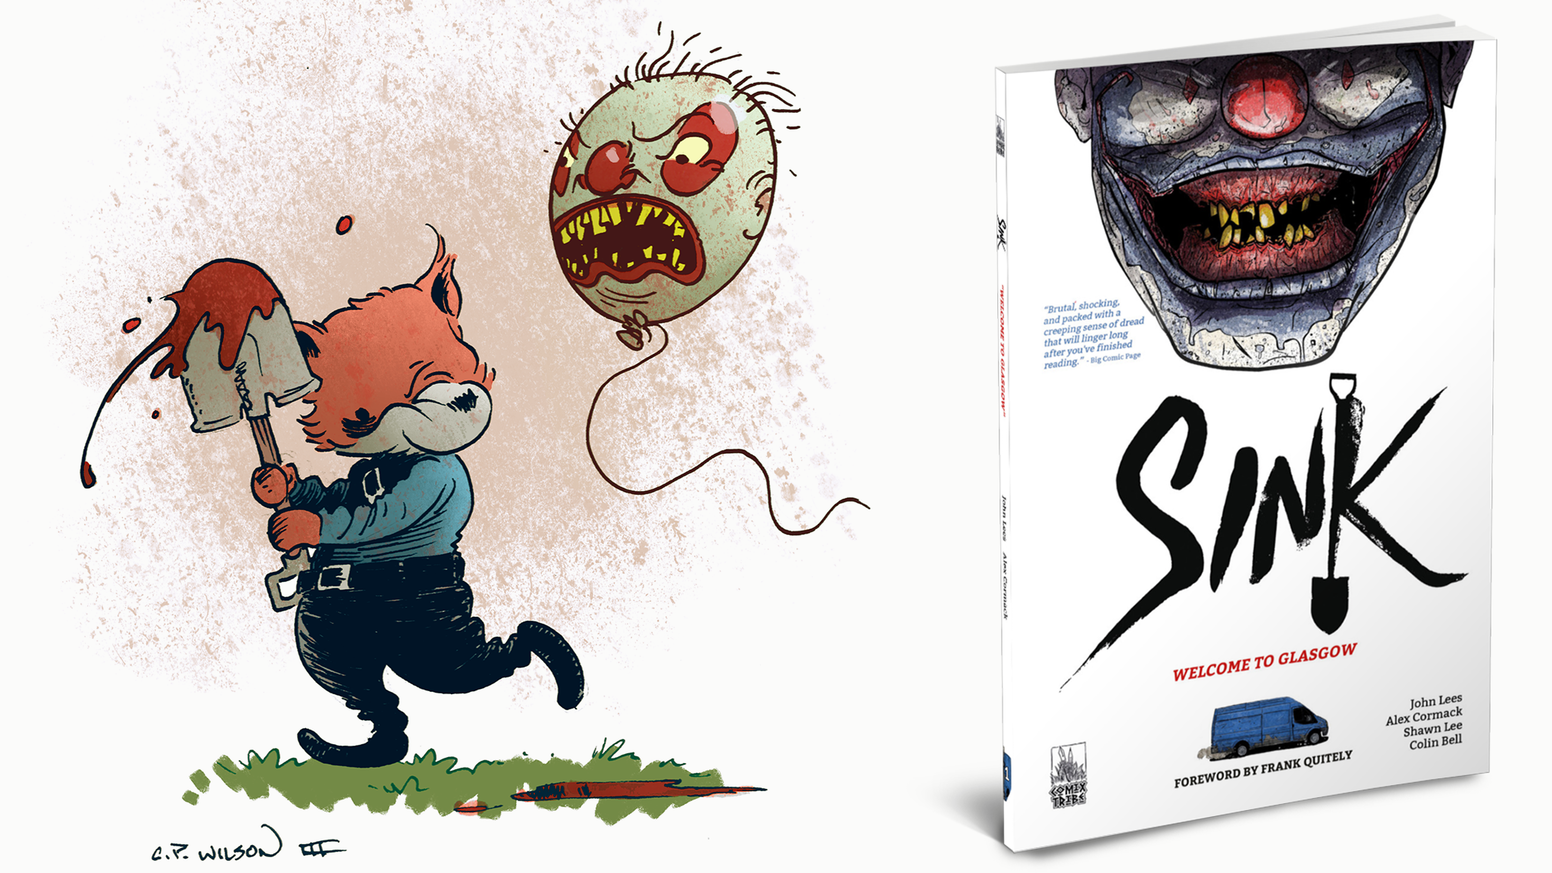 Collects the smash hit thriller SINK #1-5 in a new 160-page volume. Limited edition hardcover available. Foreword by Frank Quitely.